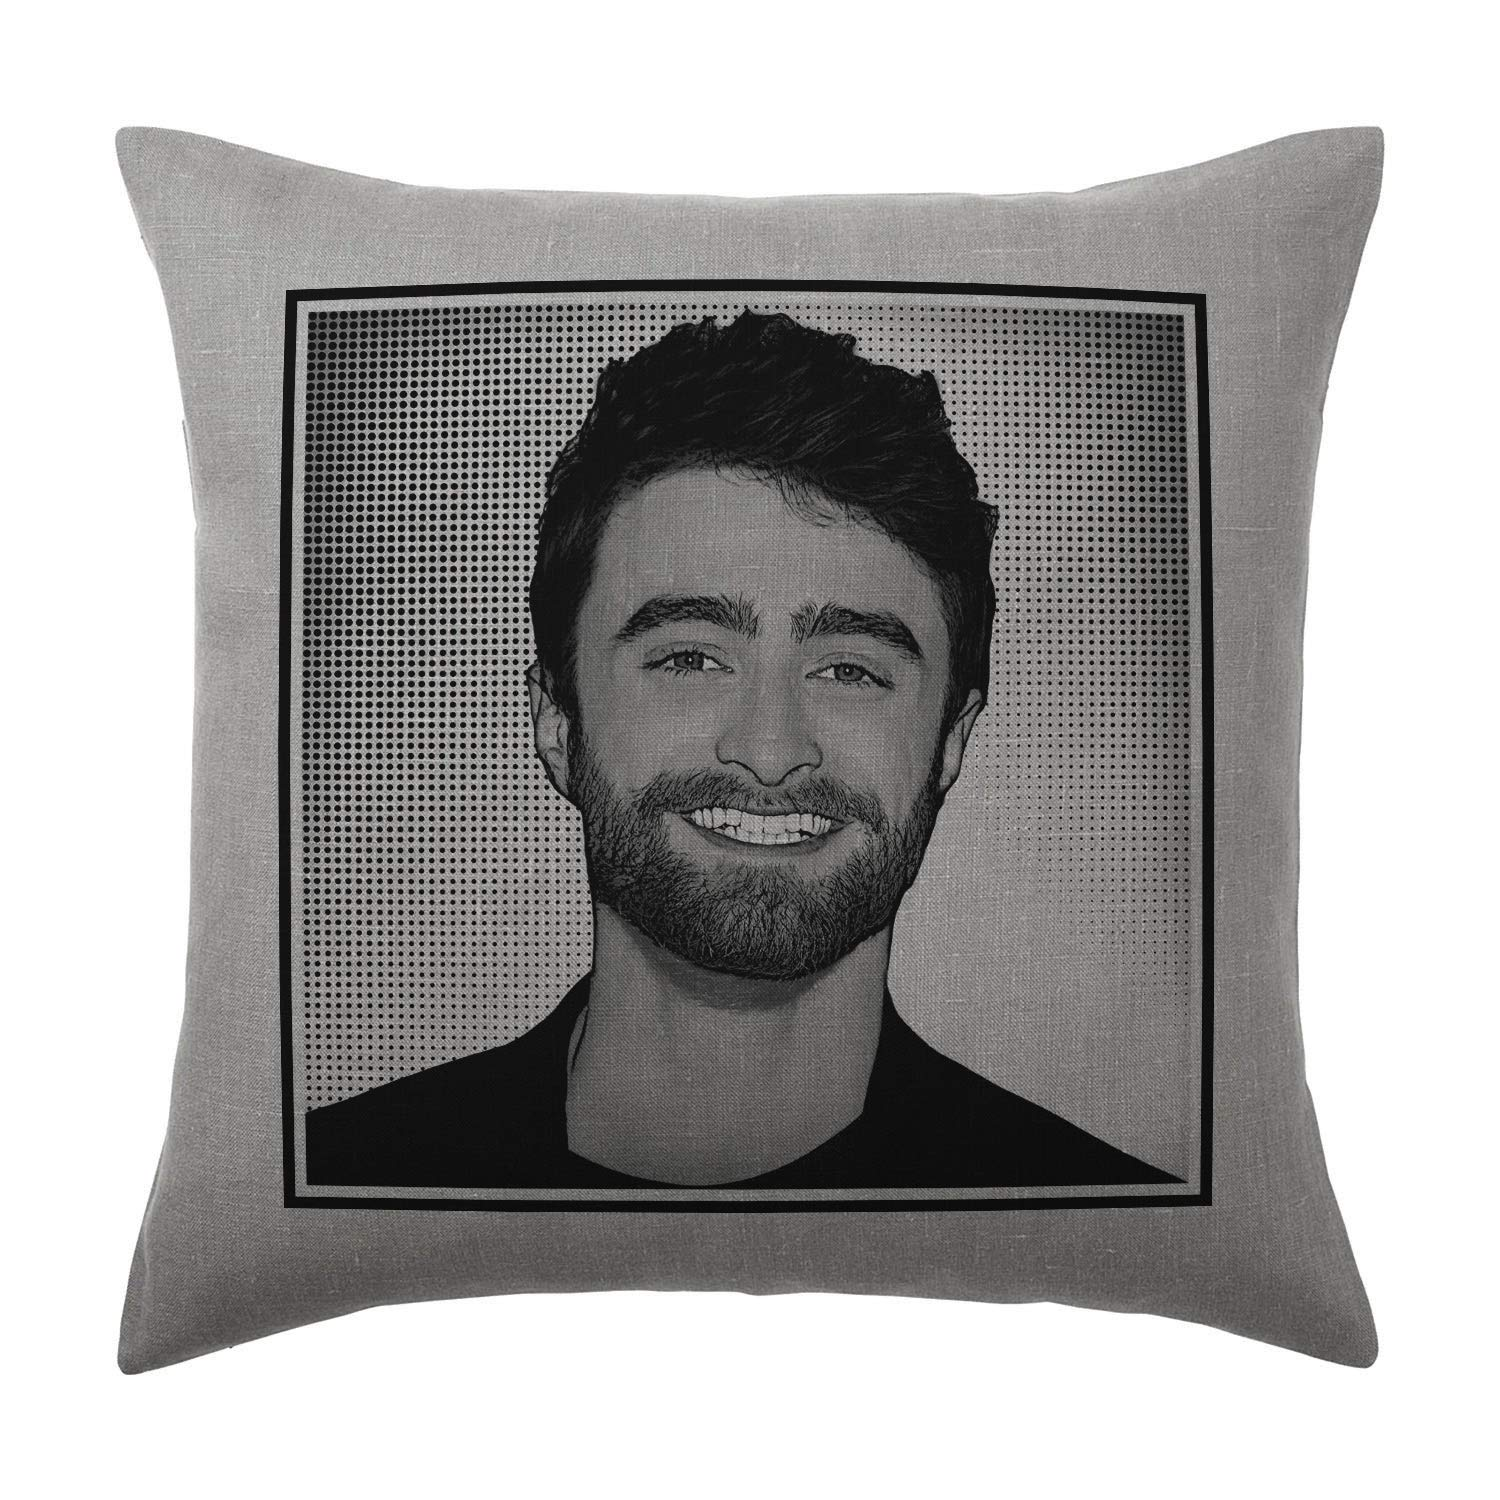 Daniel Radcliffe Cushion Pillow - Silver Grey - Pop Art - 100% Cotton - Available with or without filling pad - 40x40cm (Cover and filling pad) The Stocking Fillers